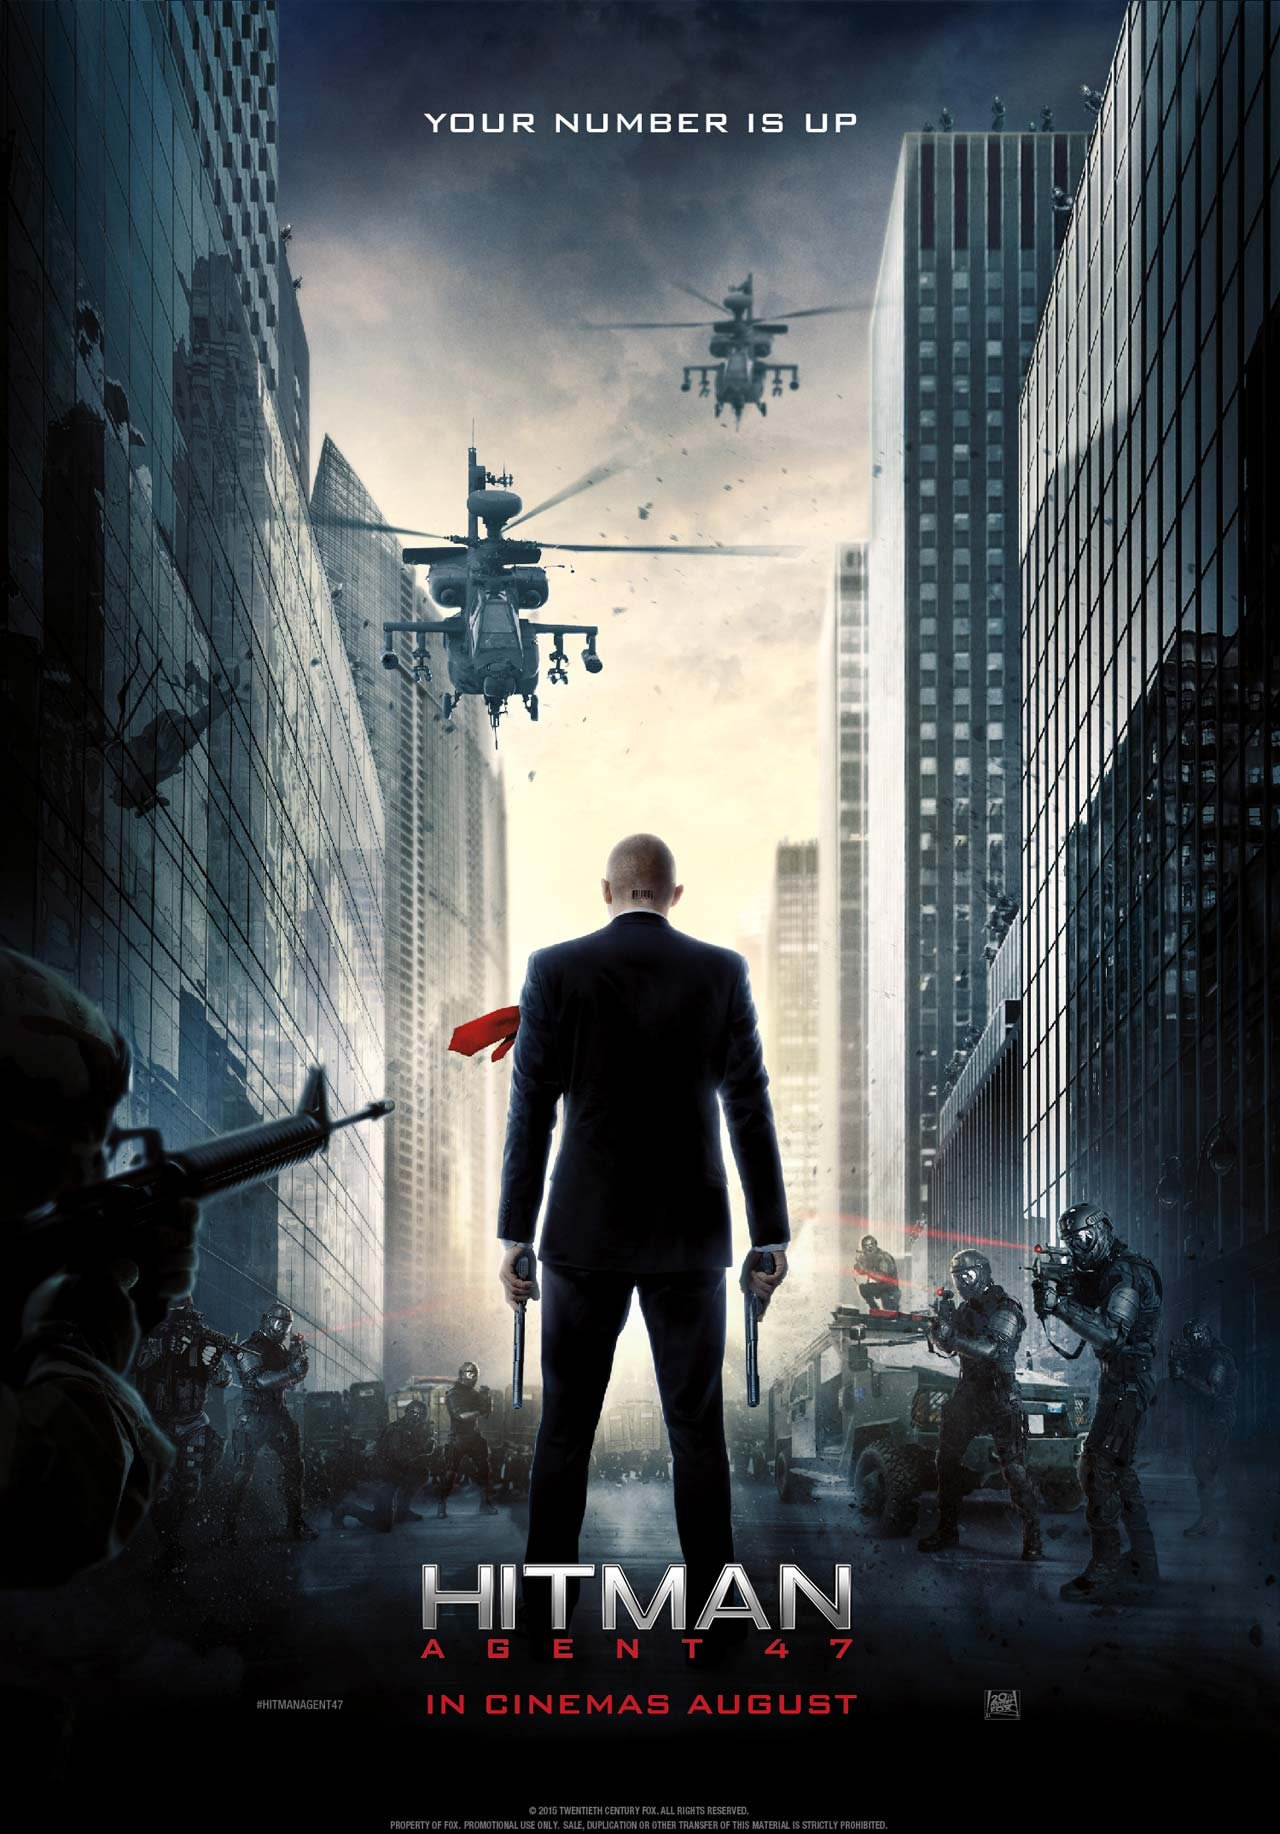 Hitman: Agent 47 (Movie) Review 7